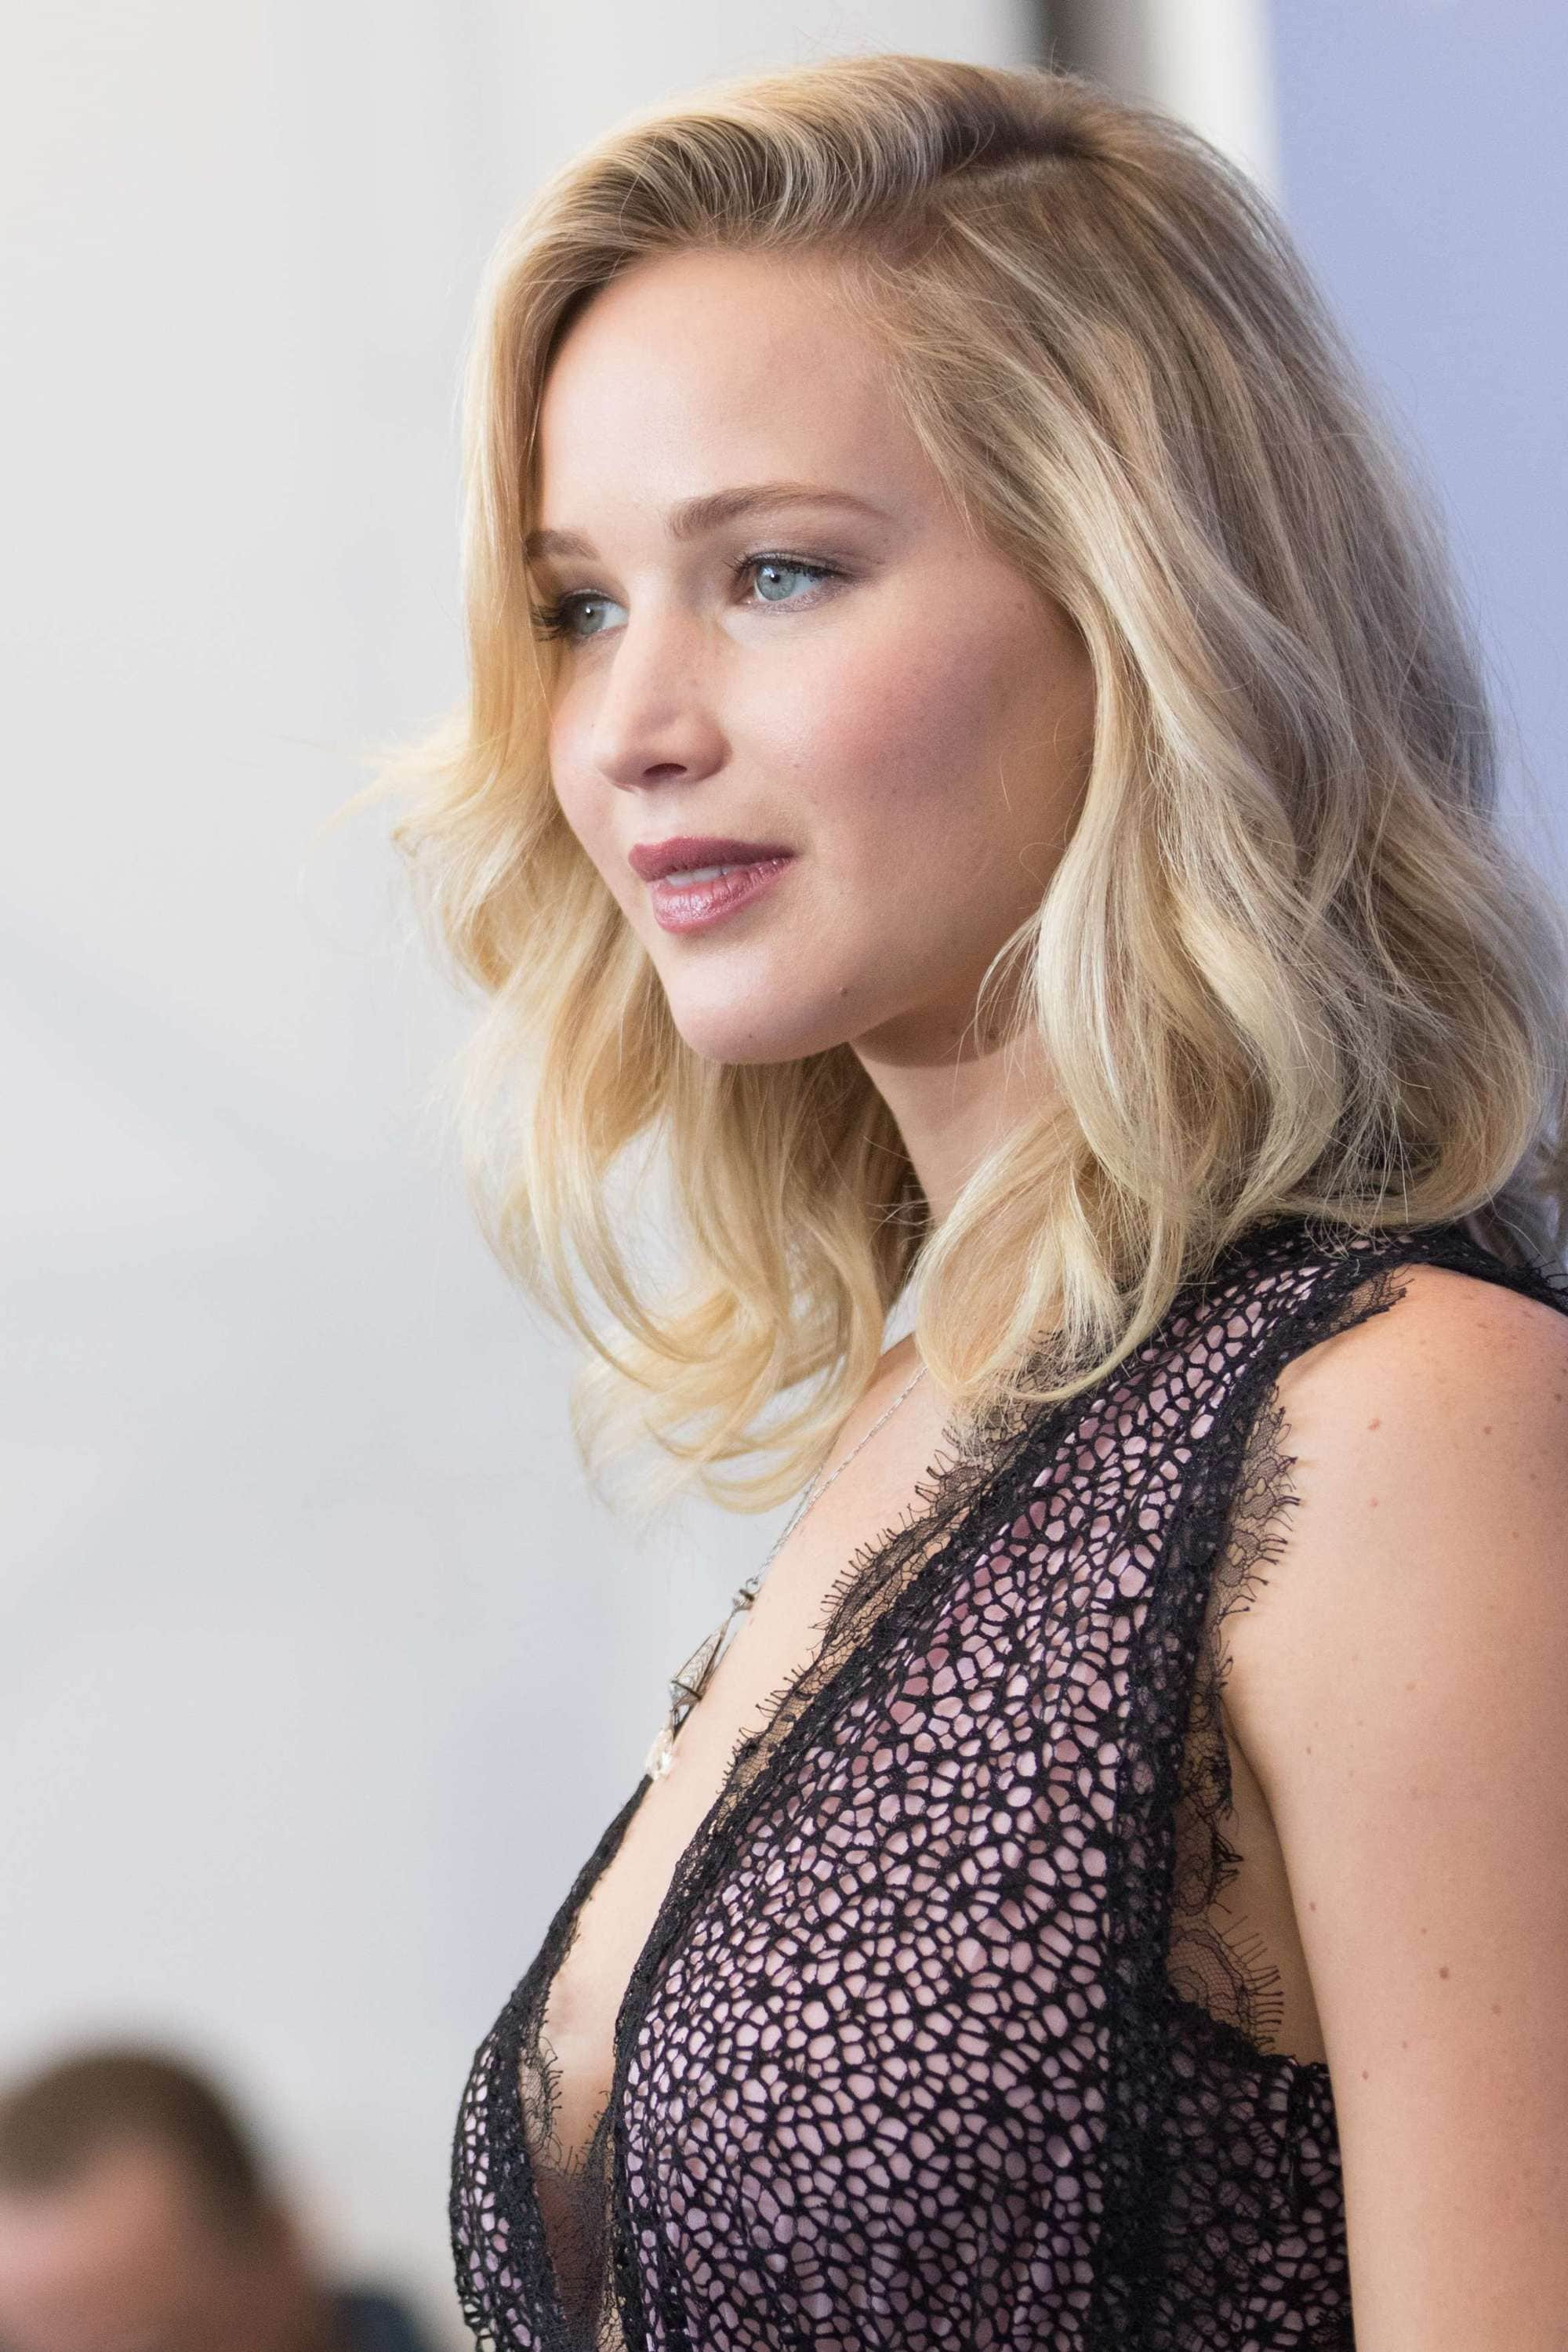 side profile of actress jennifer lawrence with cream soda blonde hair